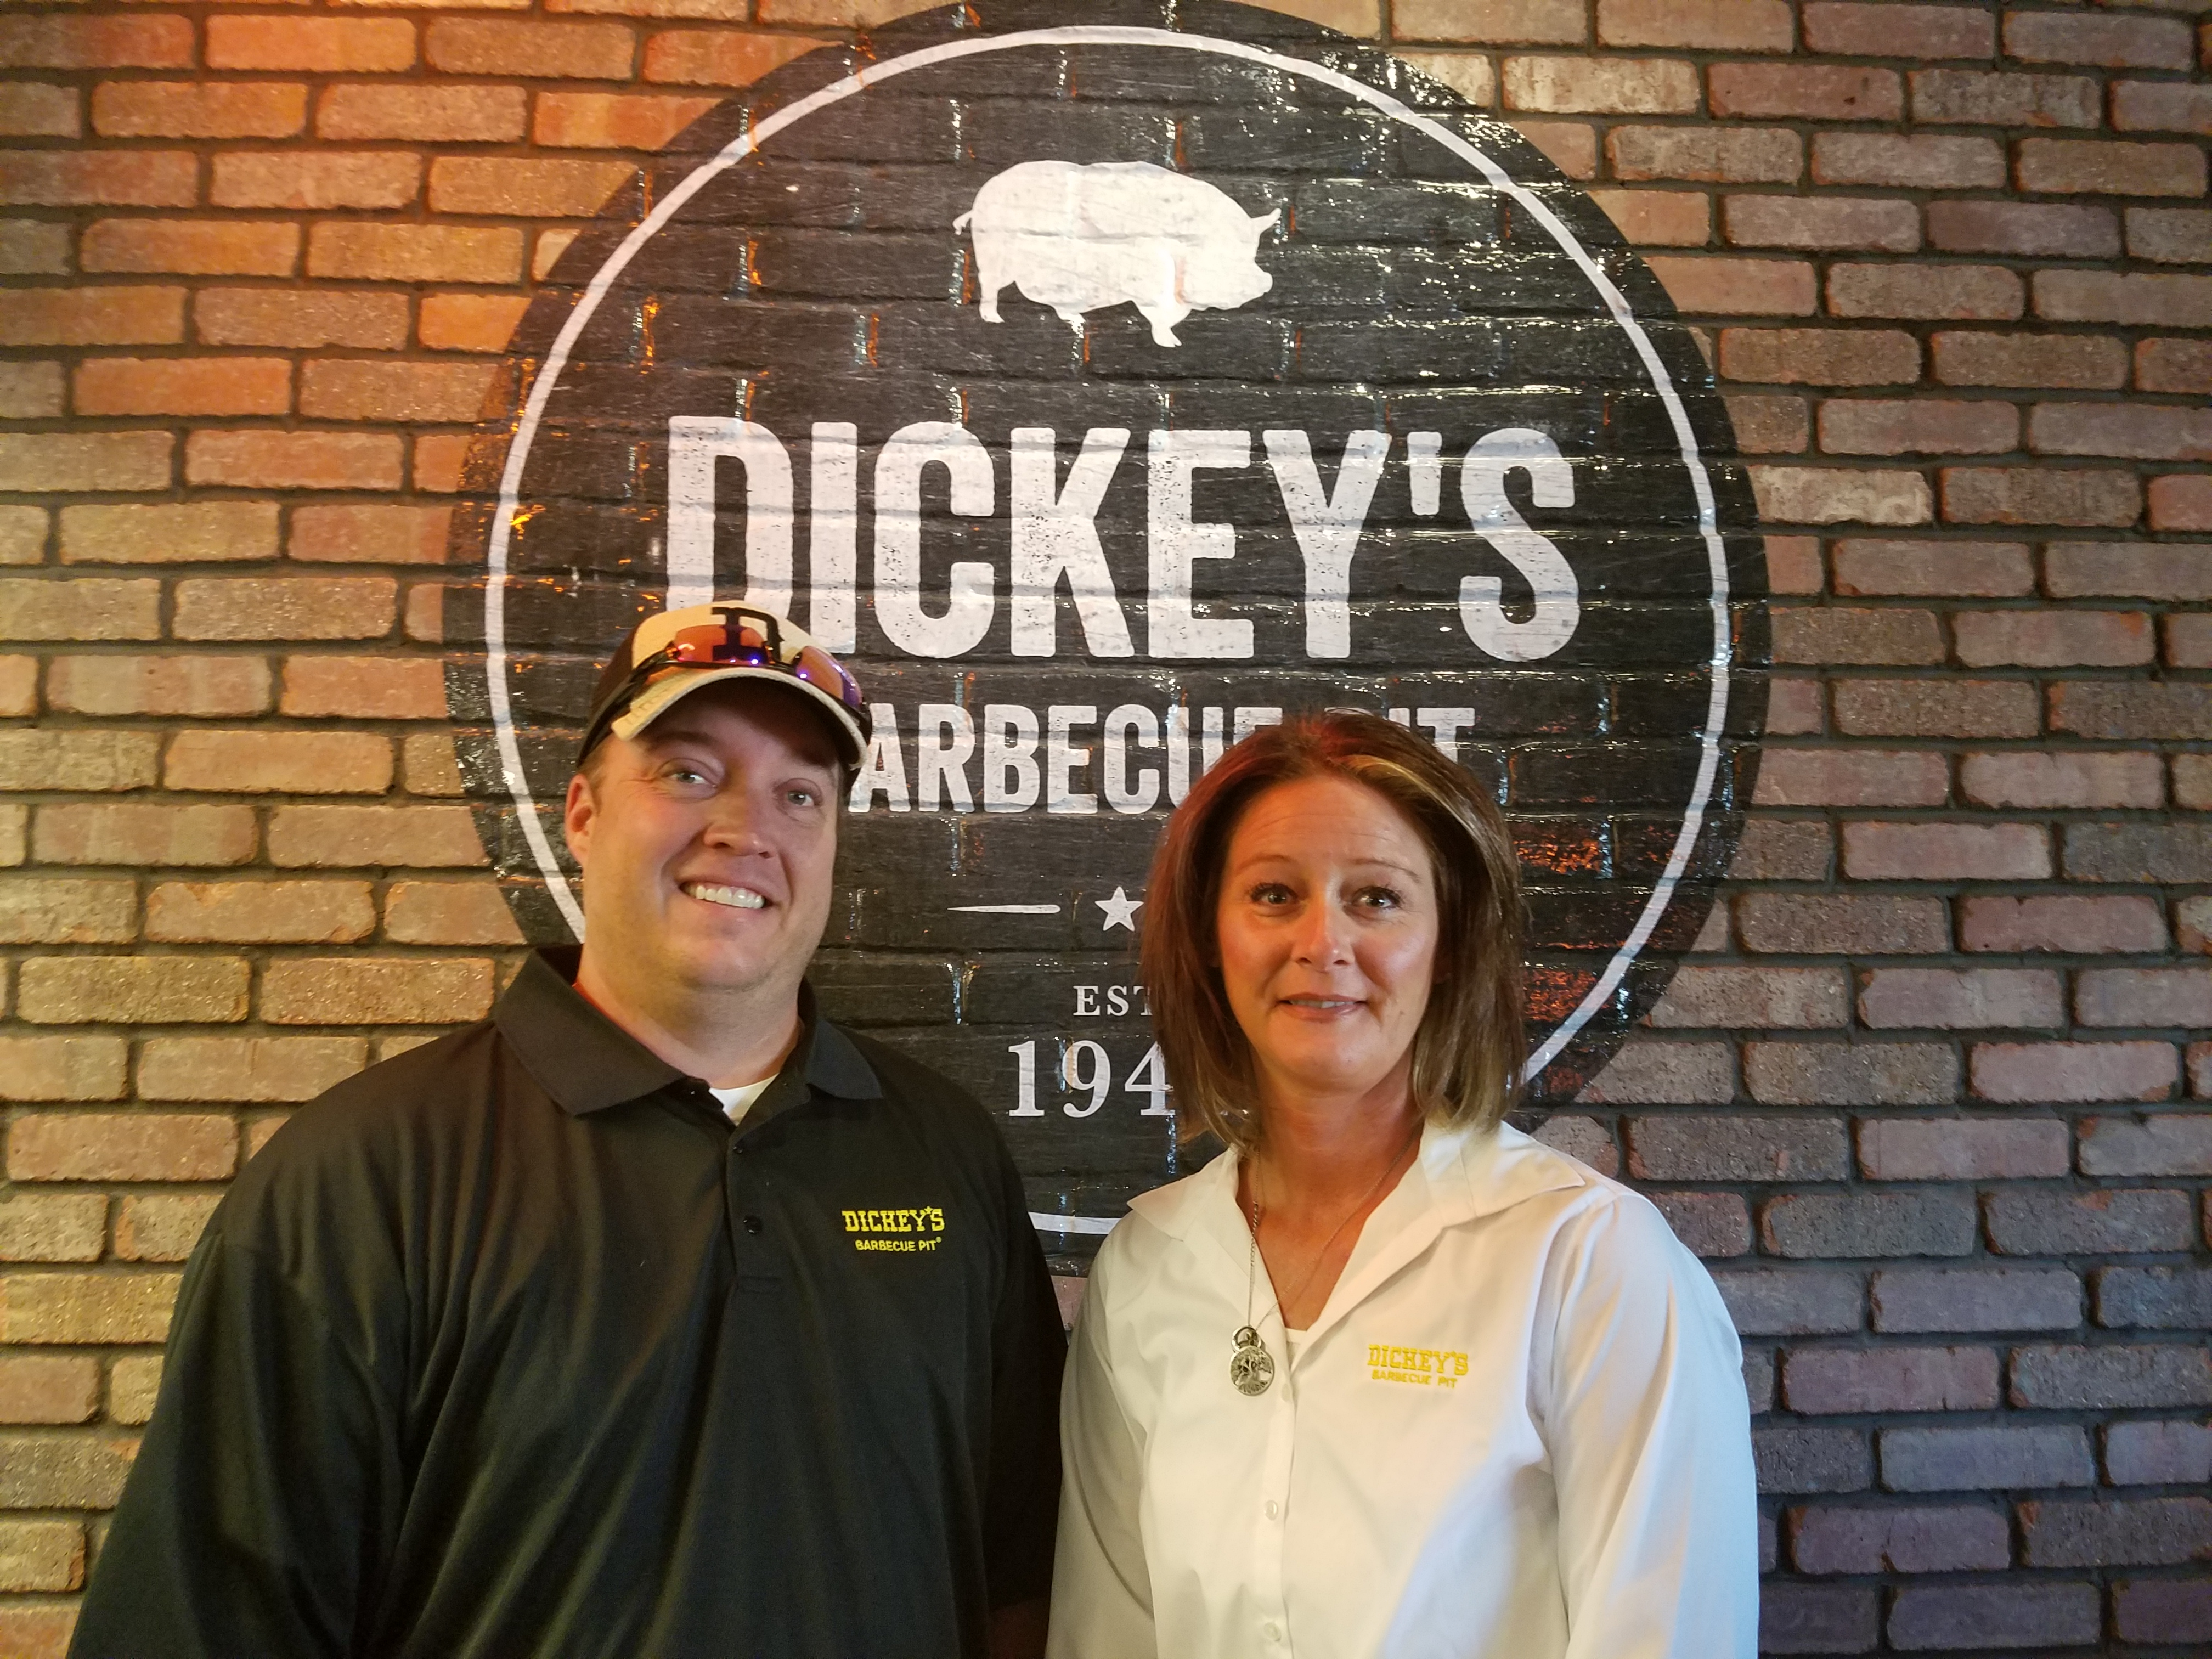 Dickey's Barbecue Pit Brings Authentic, Slow-smoked Barbecue To Brighton